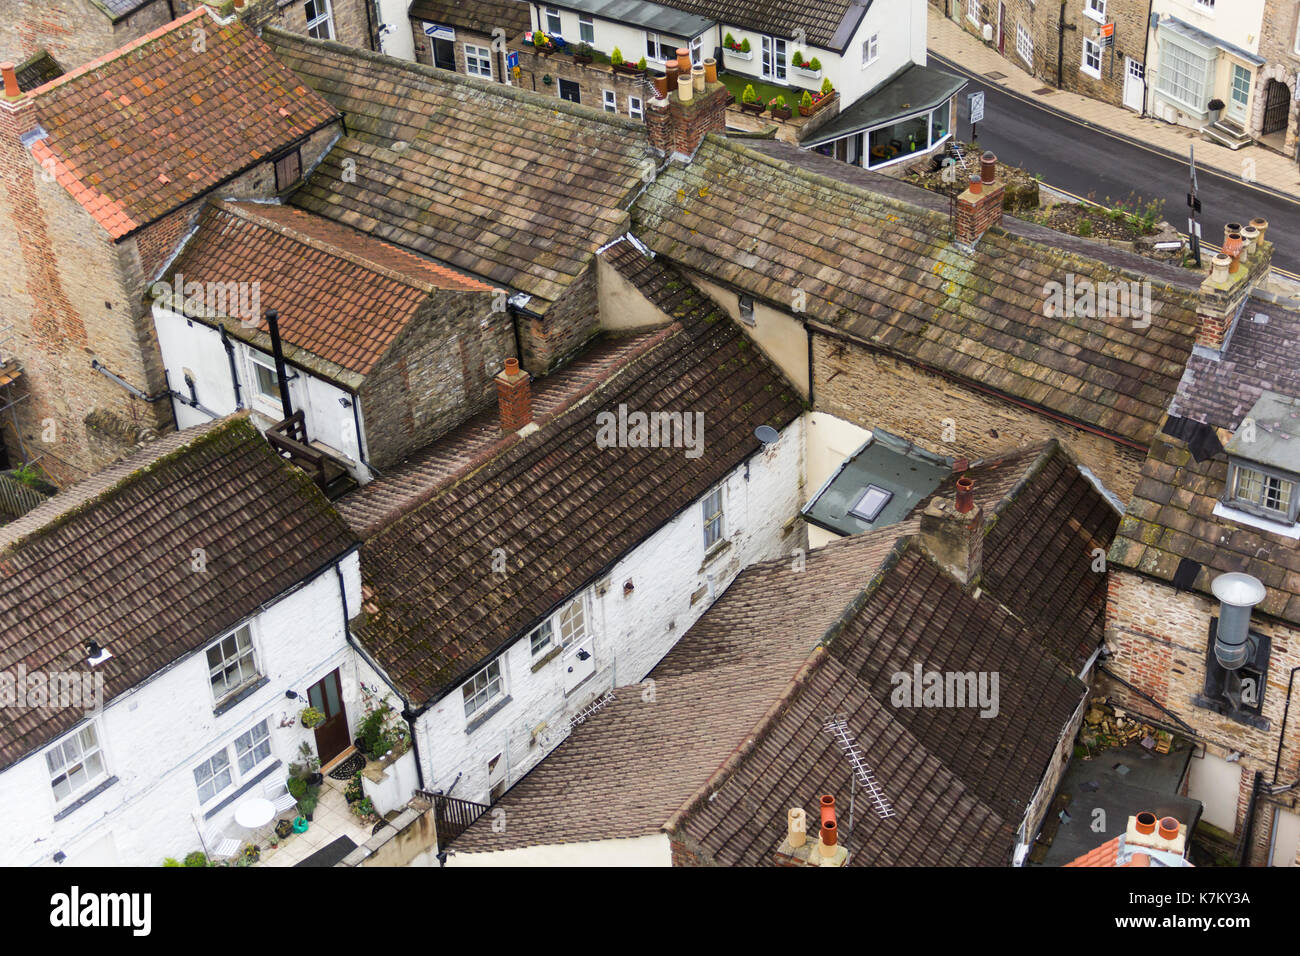 High angle view of the rooftops of buildings in Richmond, Yorkshire. - Stock Image